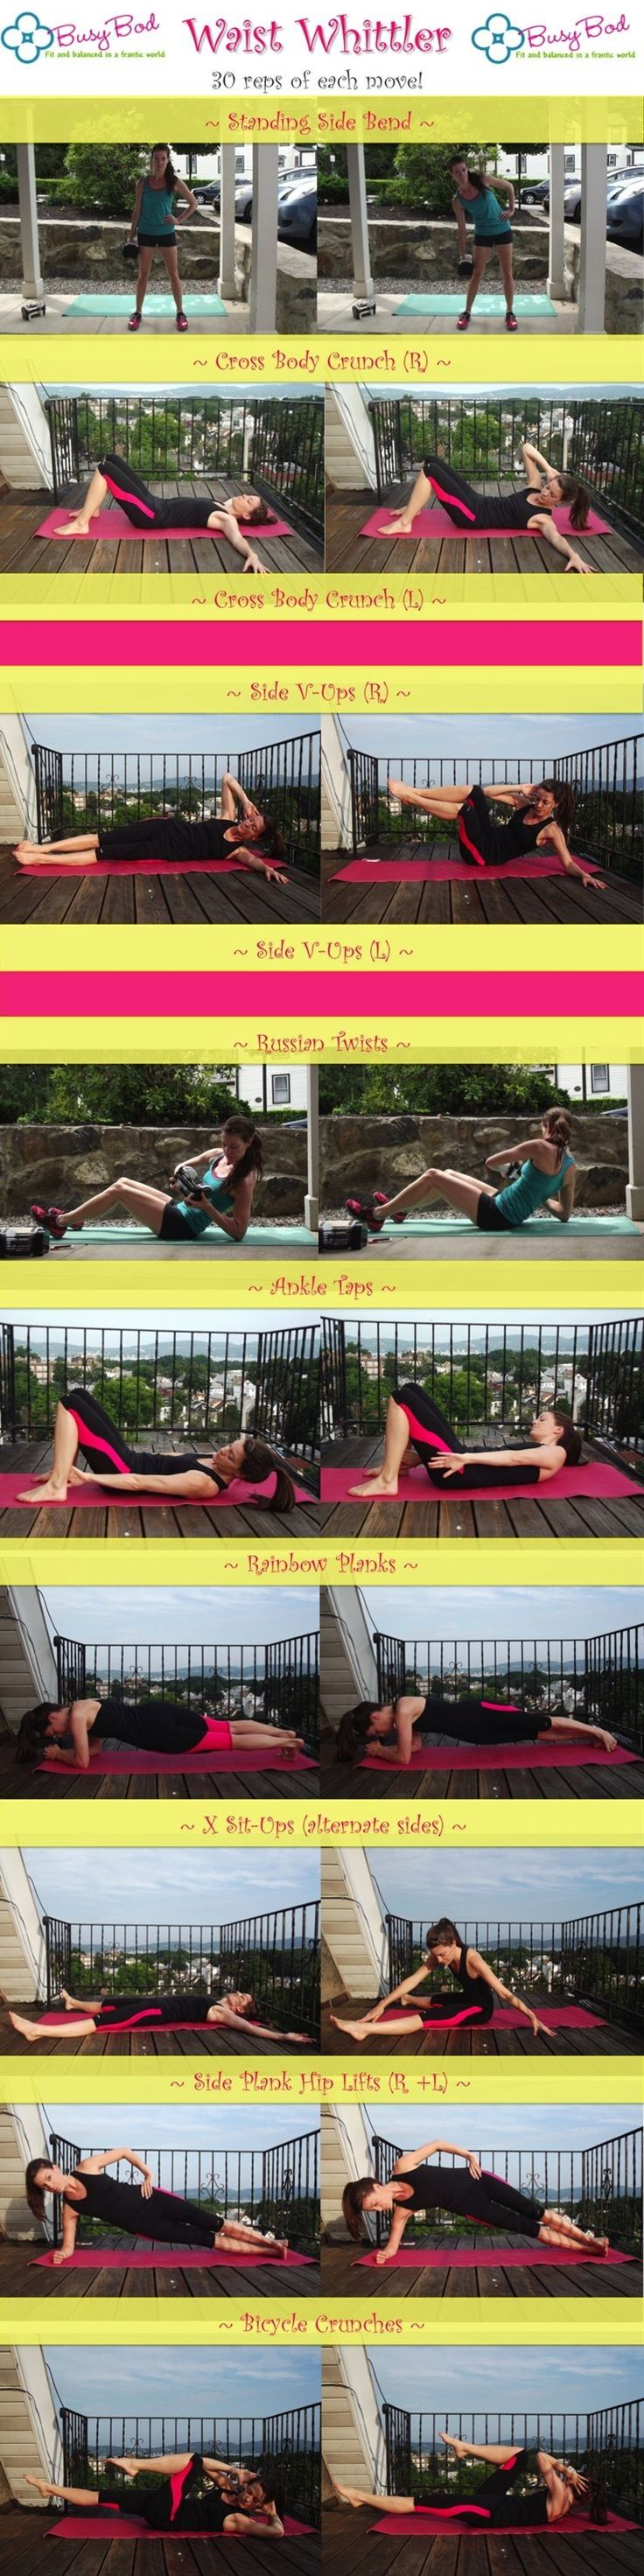 10 minute obliques workout from the July Abs Challenge! Really burns your abs and cinches in your waist.